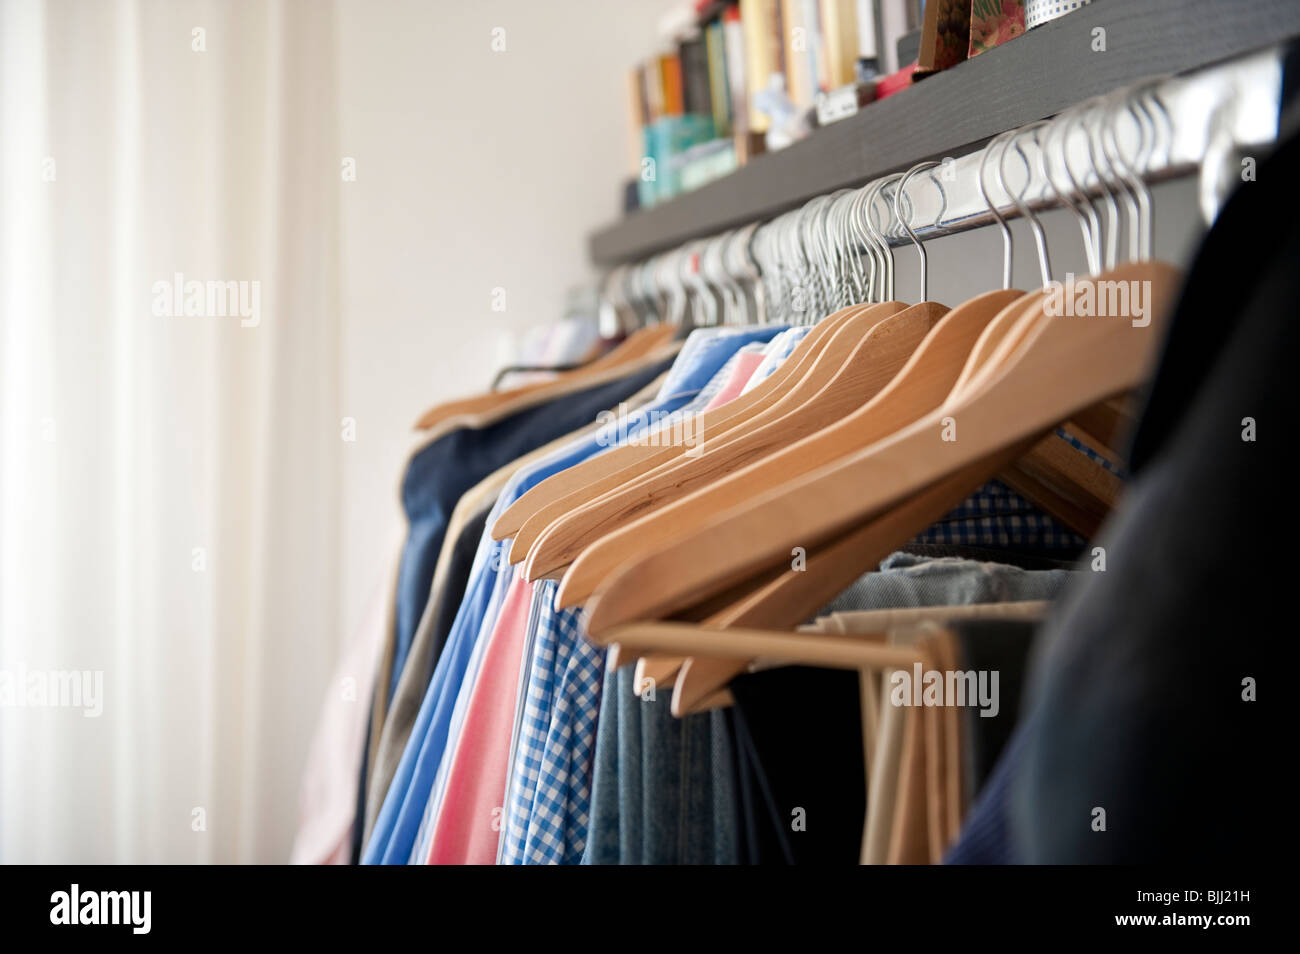 a mess of dress in a confused wardrobe - Stock Image